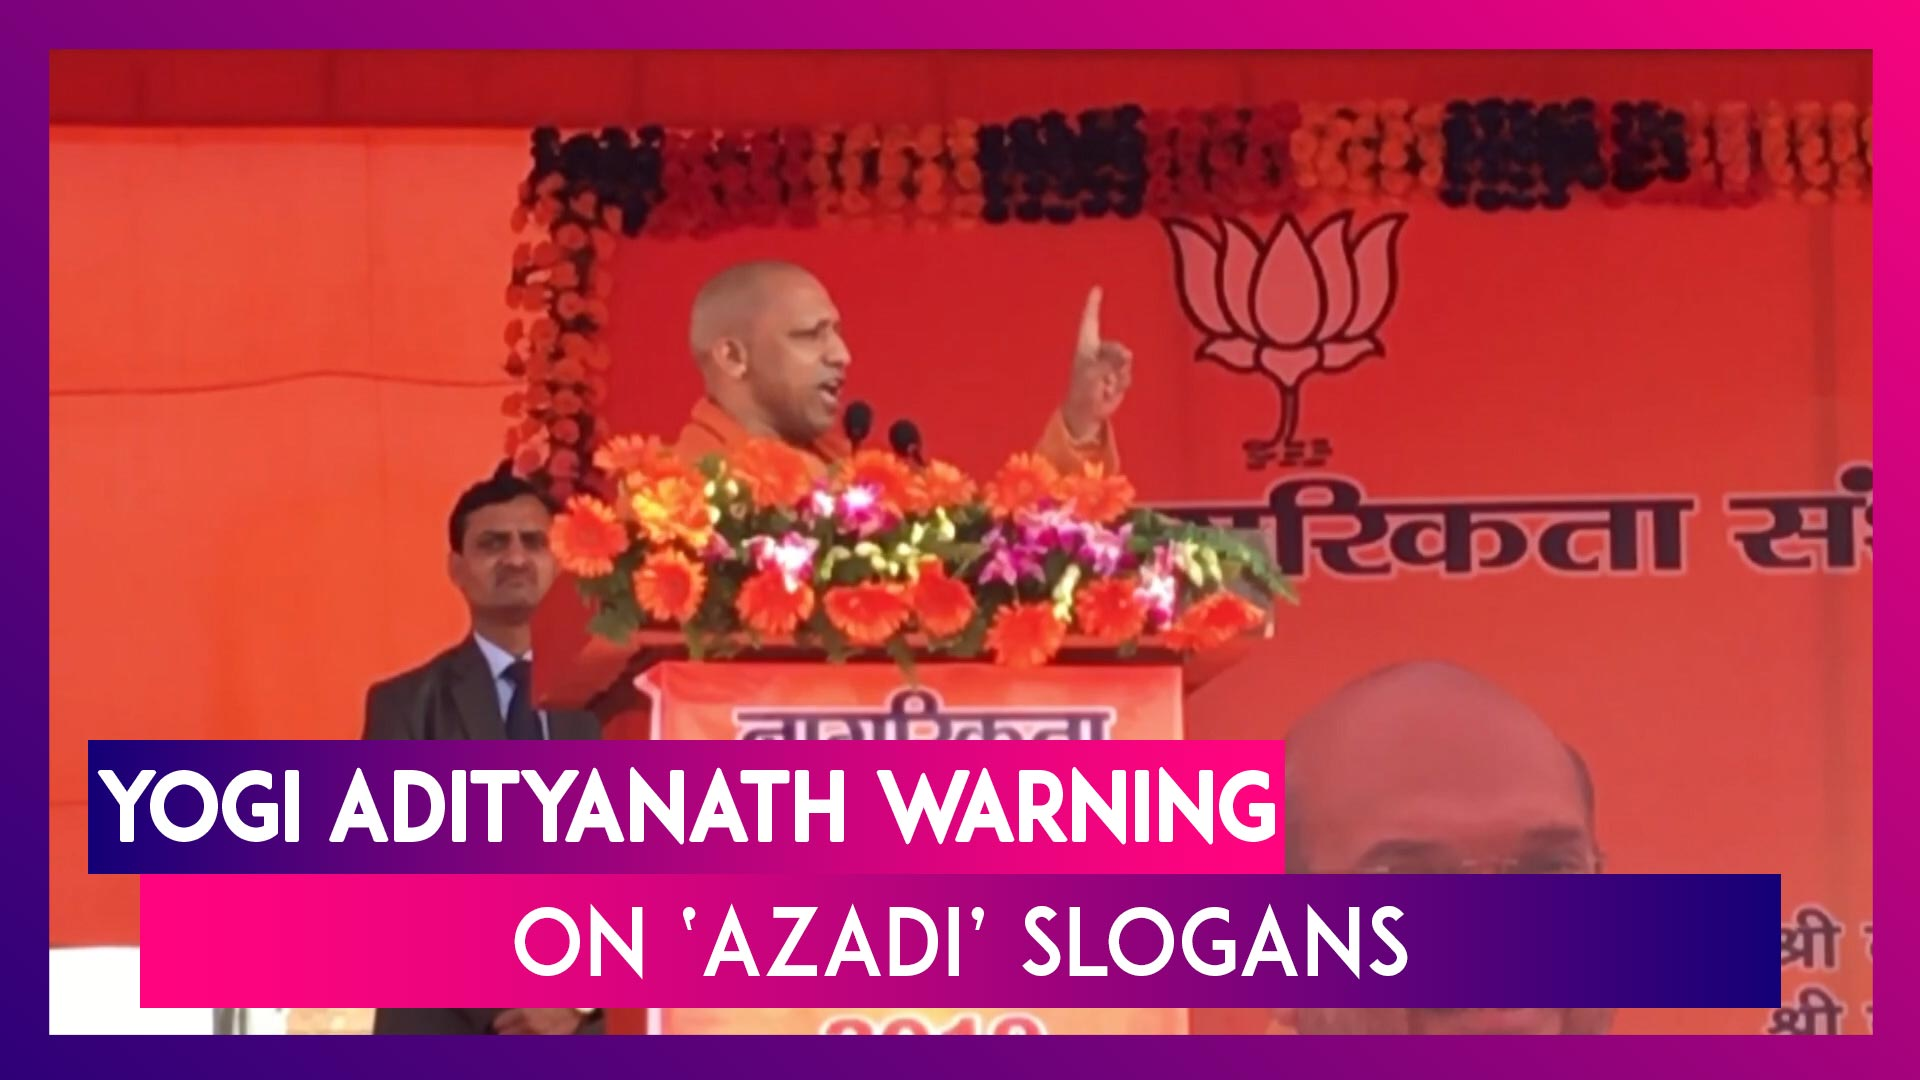 CAA Protests: 'Azadi' Slogans Will Result In Sedition Charges, Warns Yogi Adityanath